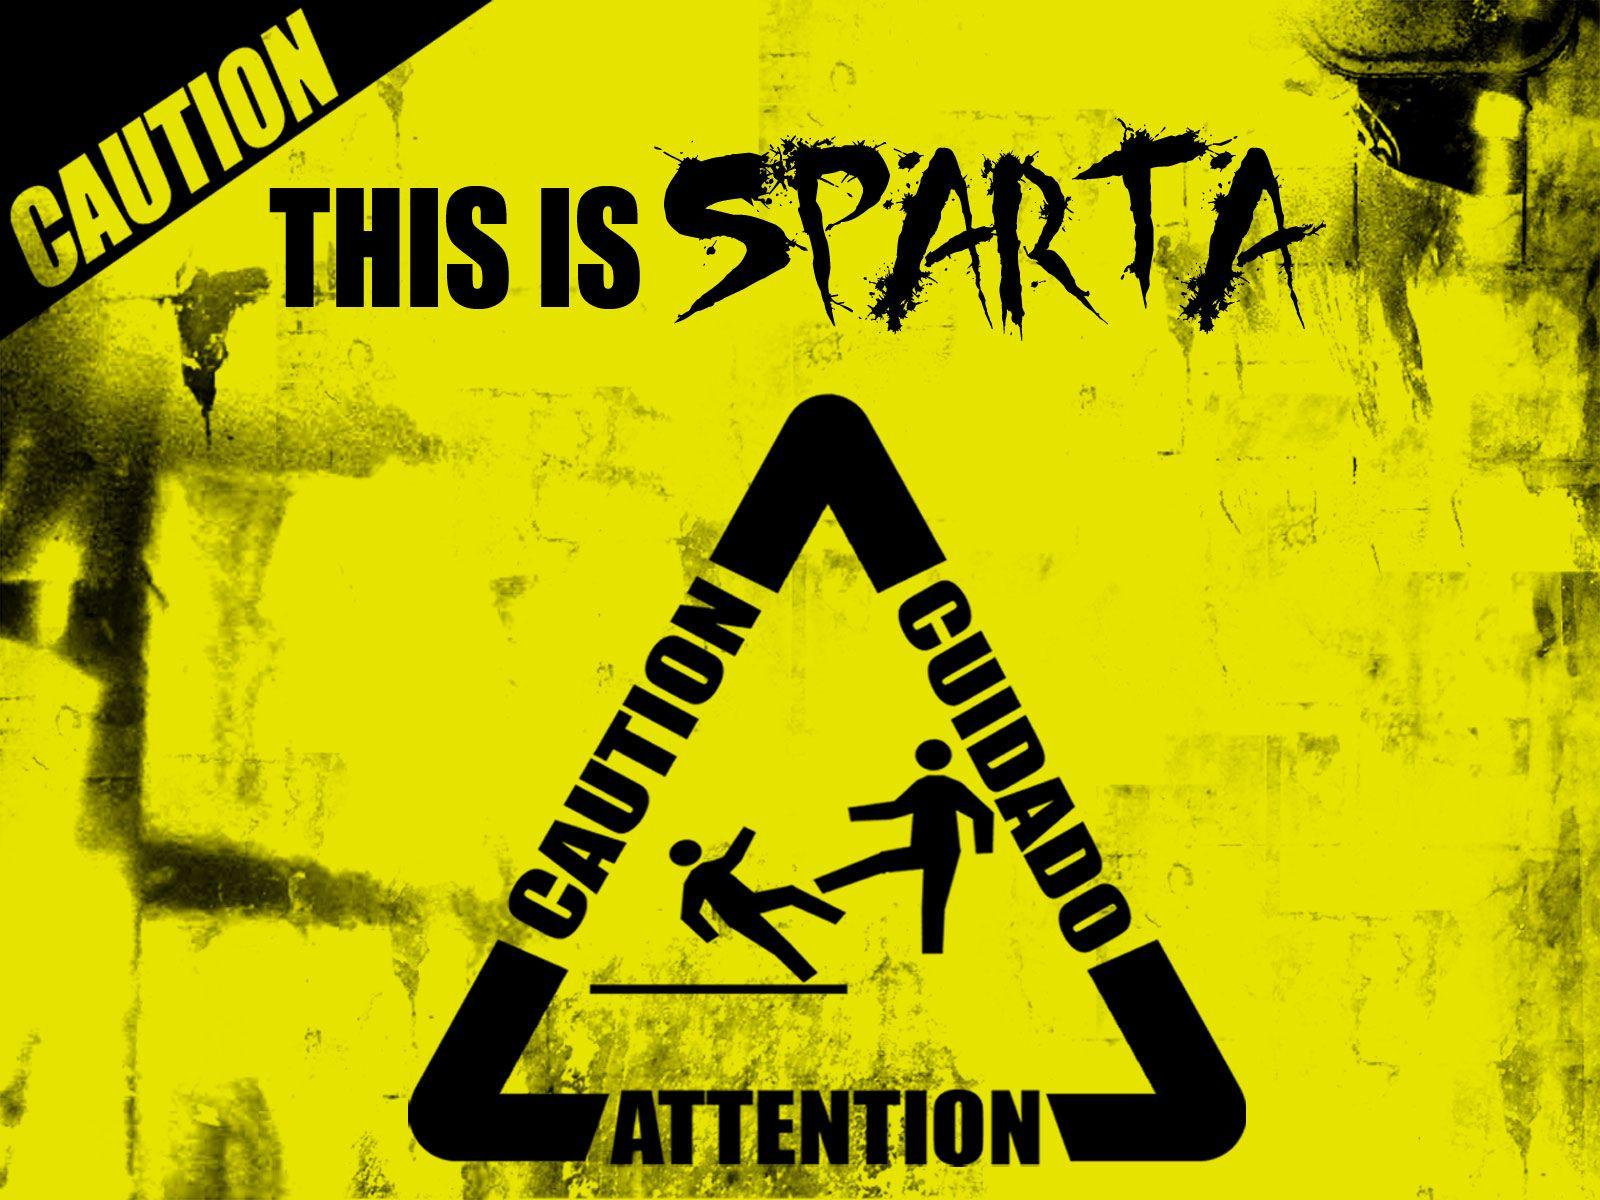 Caution This is Sparta Wallpaper - WallpaperSafari